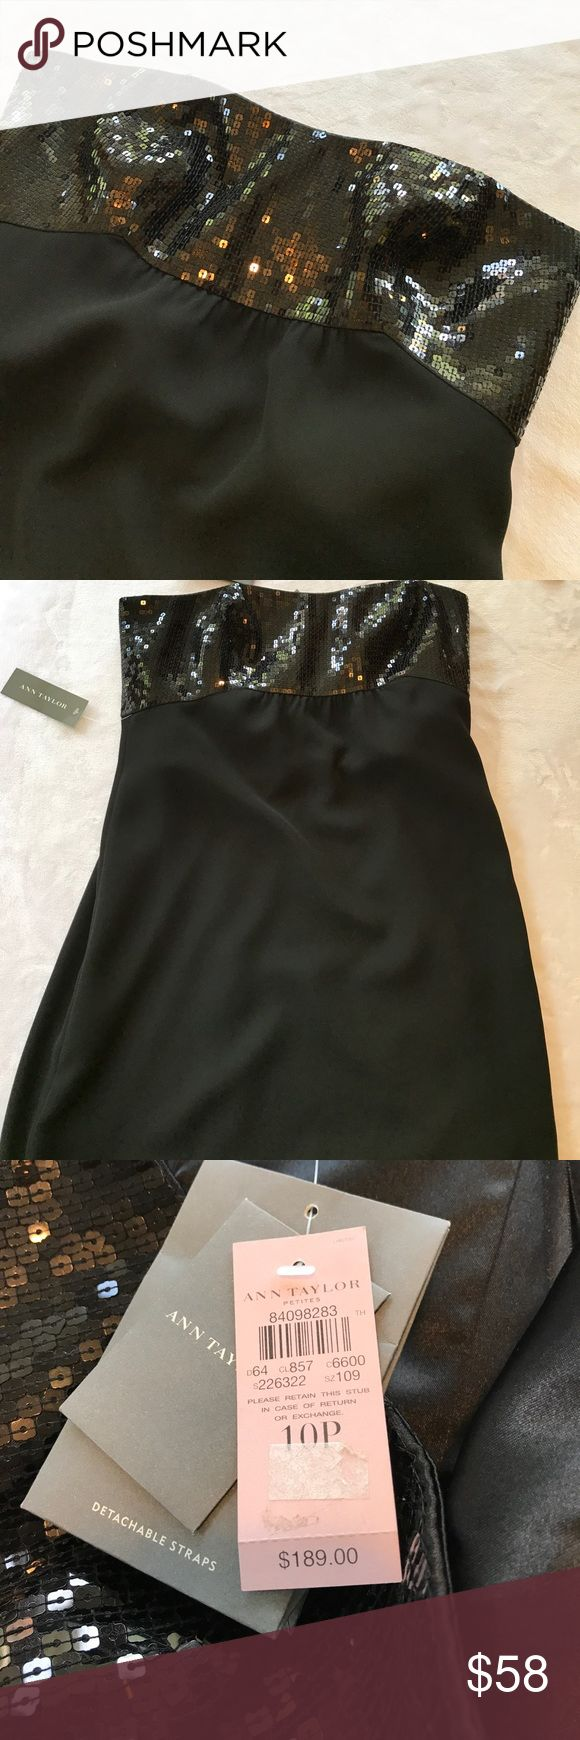 Ann Taylor Petites 10P Black Sequin Dress Beautiful for homecoming or the holidays! Ann Taylor Petites 10P Black Sequin Dress. New with tags, retailed $189. Strapless, but comes with detachable straps. Sequins are delicate and shift due to the manner they were sewn on. Recommend dry cleaning after wearing. Ann Taylor Petites Dresses Strapless